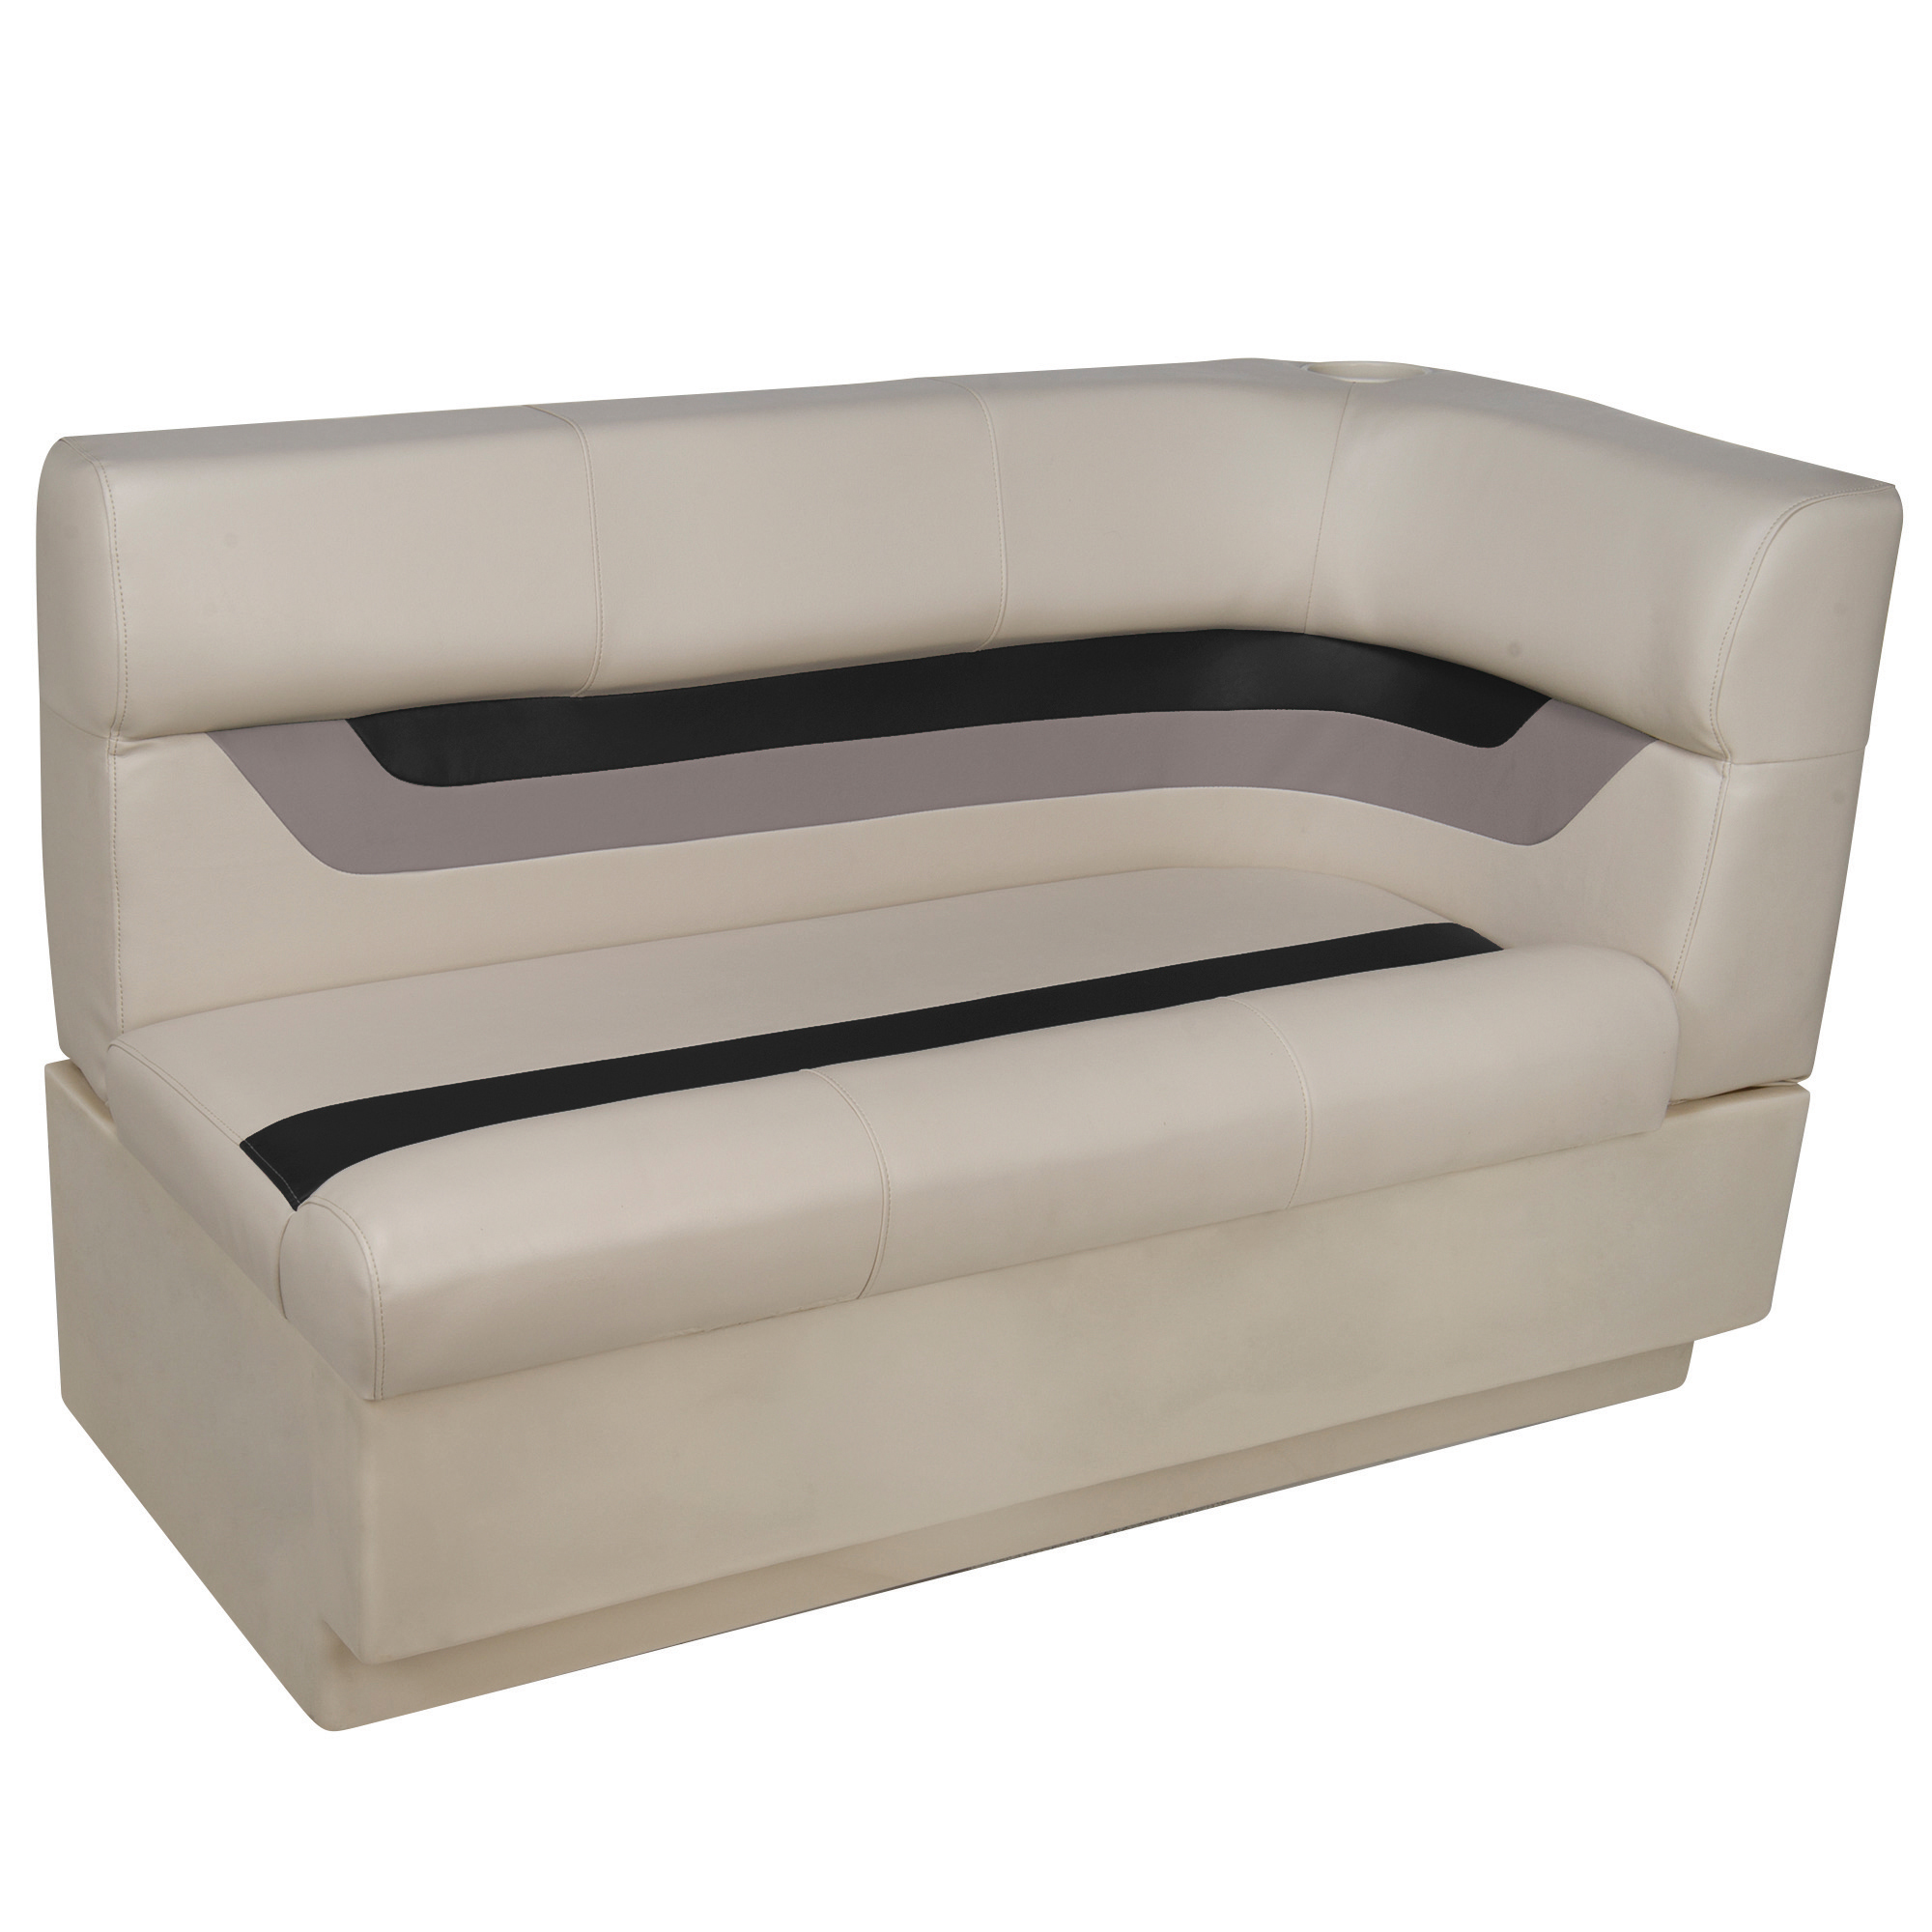 Toonmate Designer Pontoon Left-Side Corner Couch - TOP ONLY